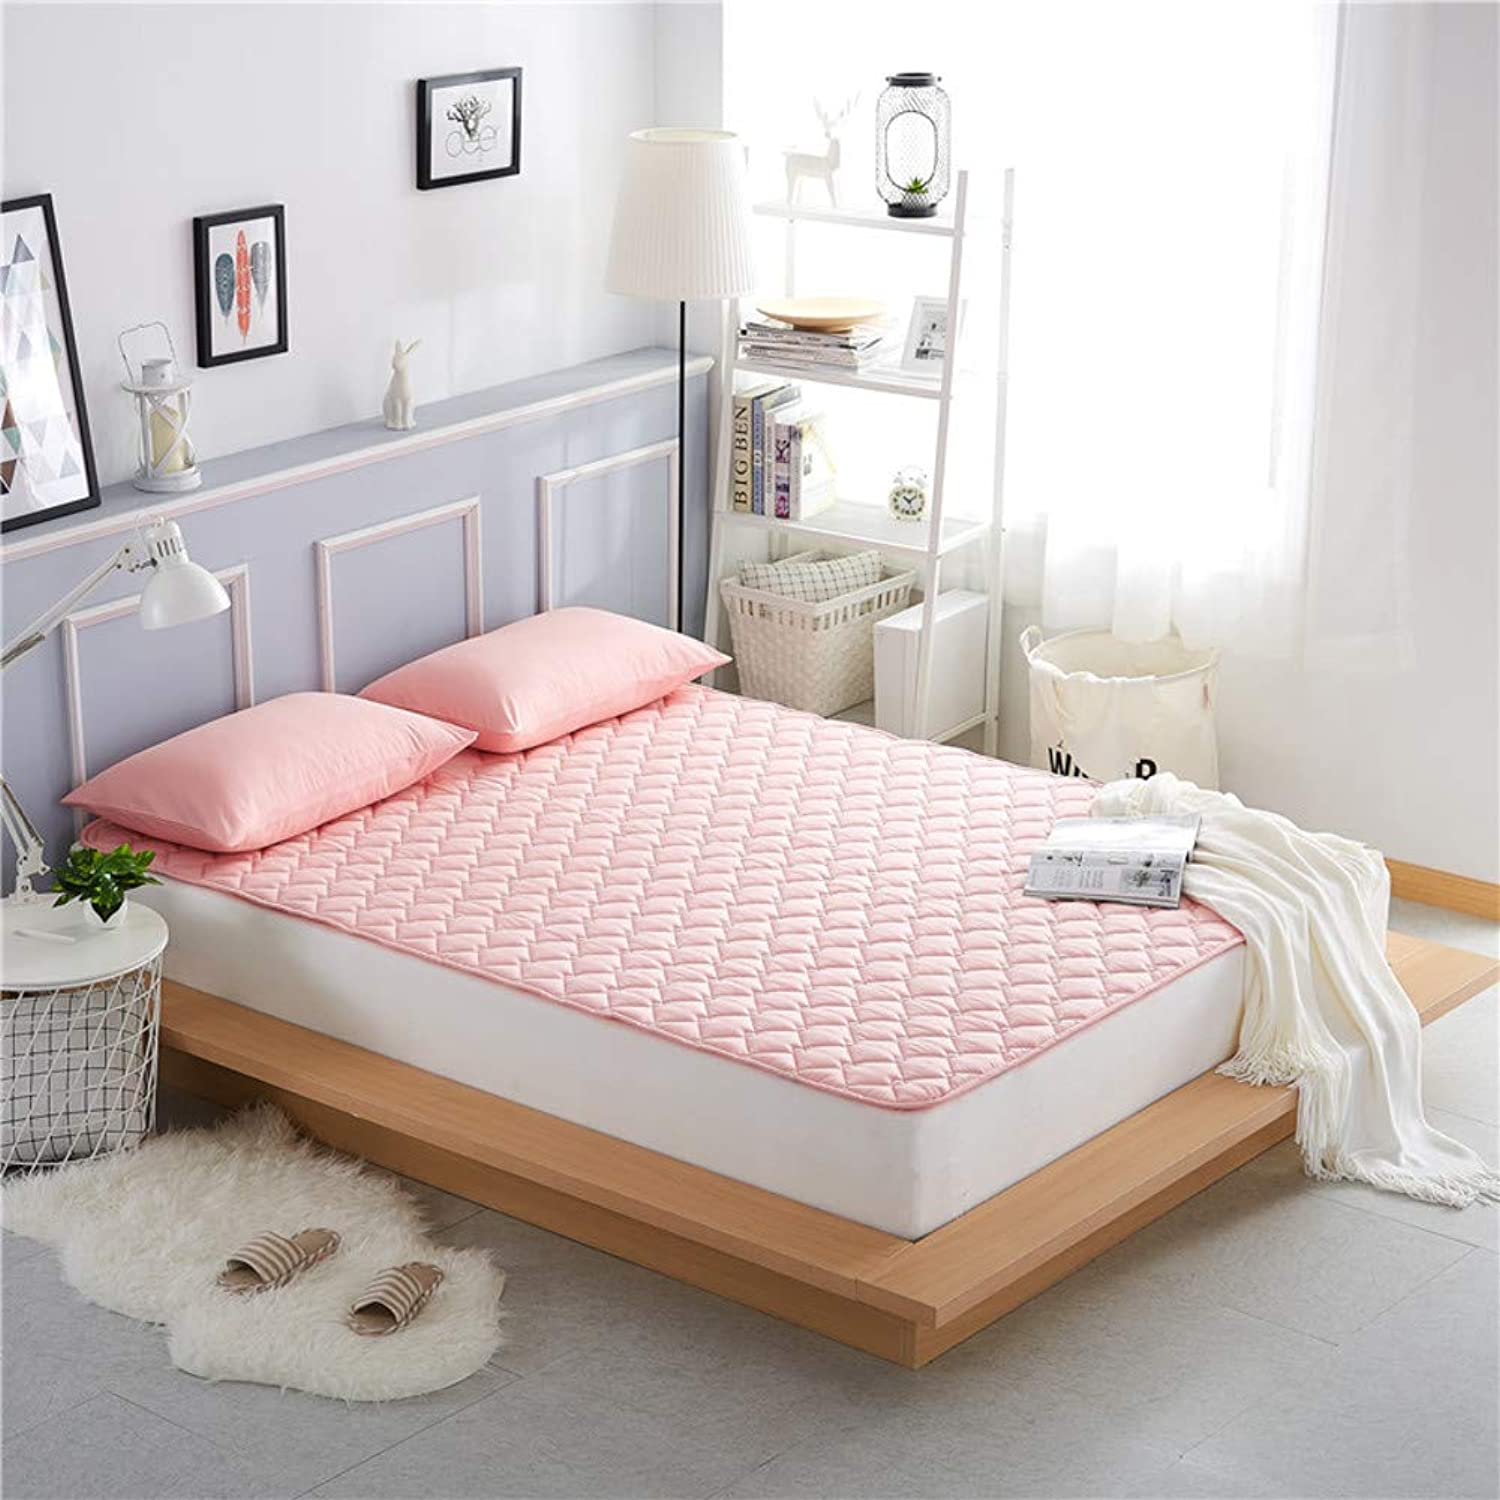 Foldable Mattress,Waterproof Bed Pad,Washable Thin 100% Cotton Anti-skidding for Bedroom-A 120x200cm(47x79inch)